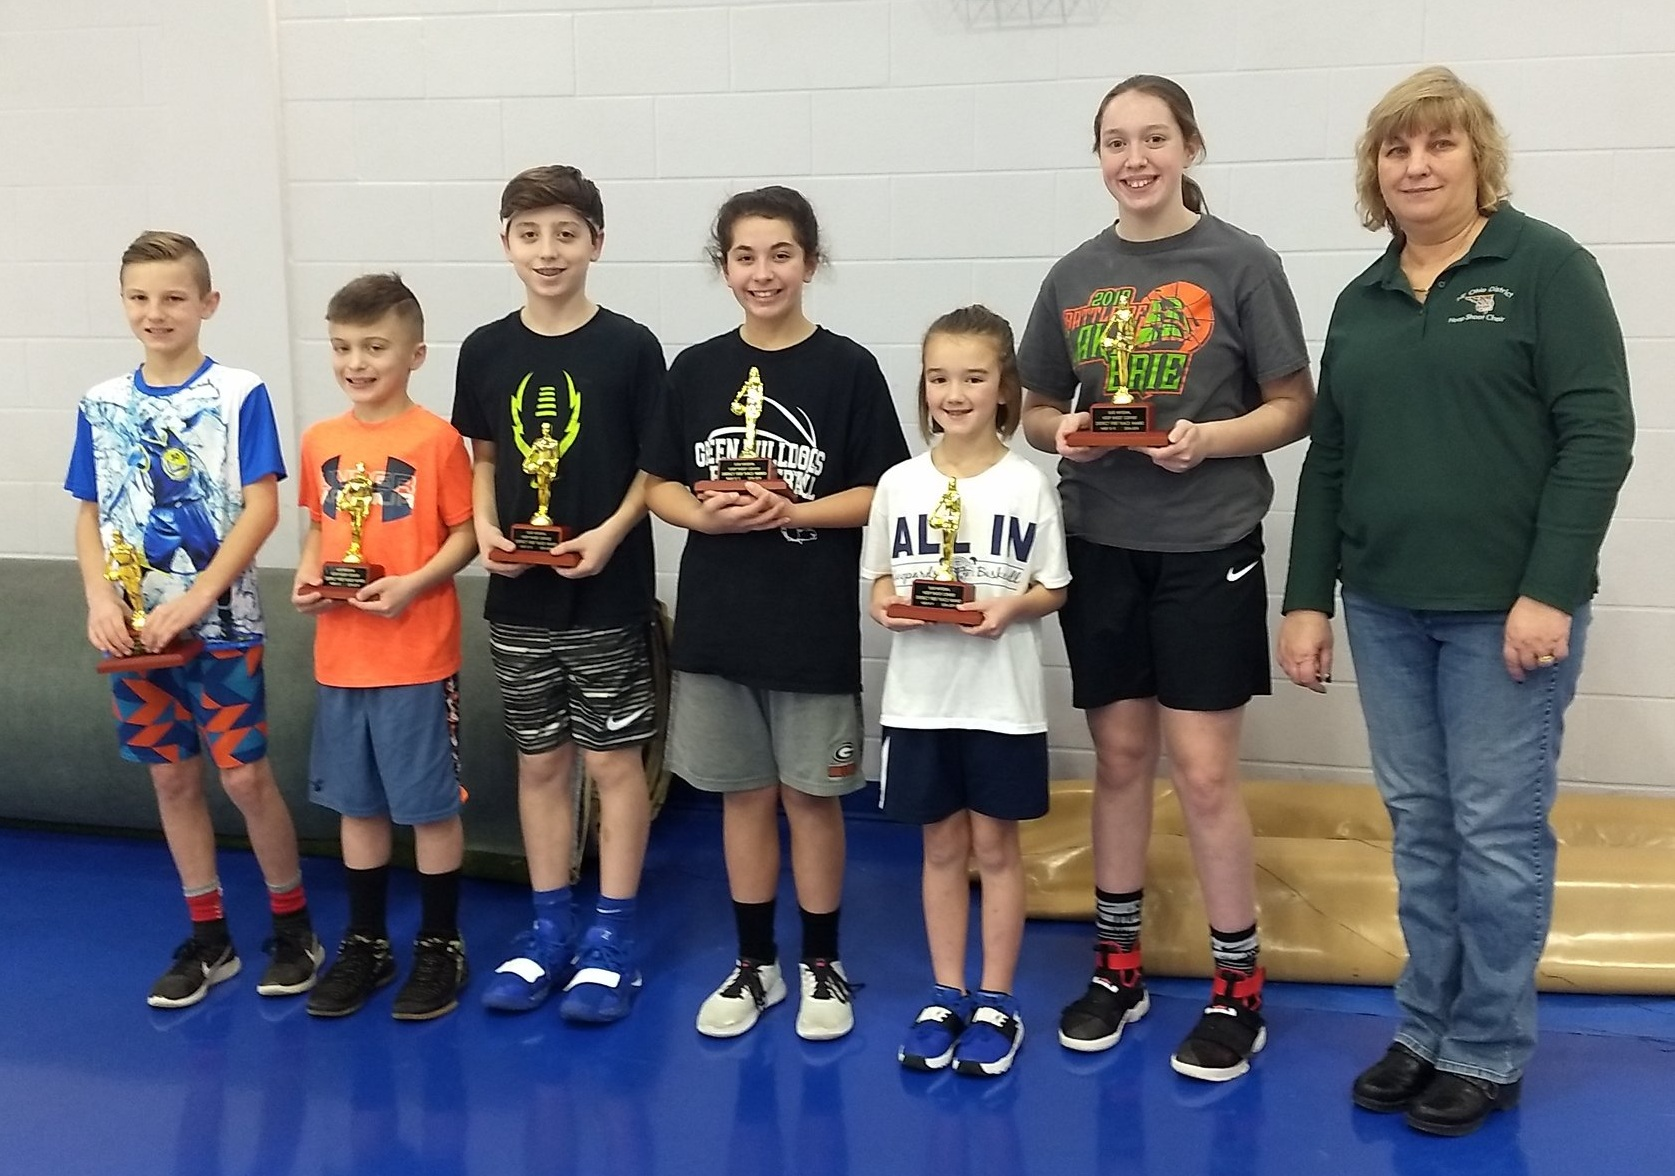 Left to right District Hoop Shoot  Winners: Ryan Turk (Lakewood), Chase Newsome (Ashtabula), Jaden Keenan (Kent), Ava Kouri (Kent), Paityn McCully (Alliance), Brooke Richmond ( Ashtabula) and Lisa Wadlow NE District Hoop Shoot Director.